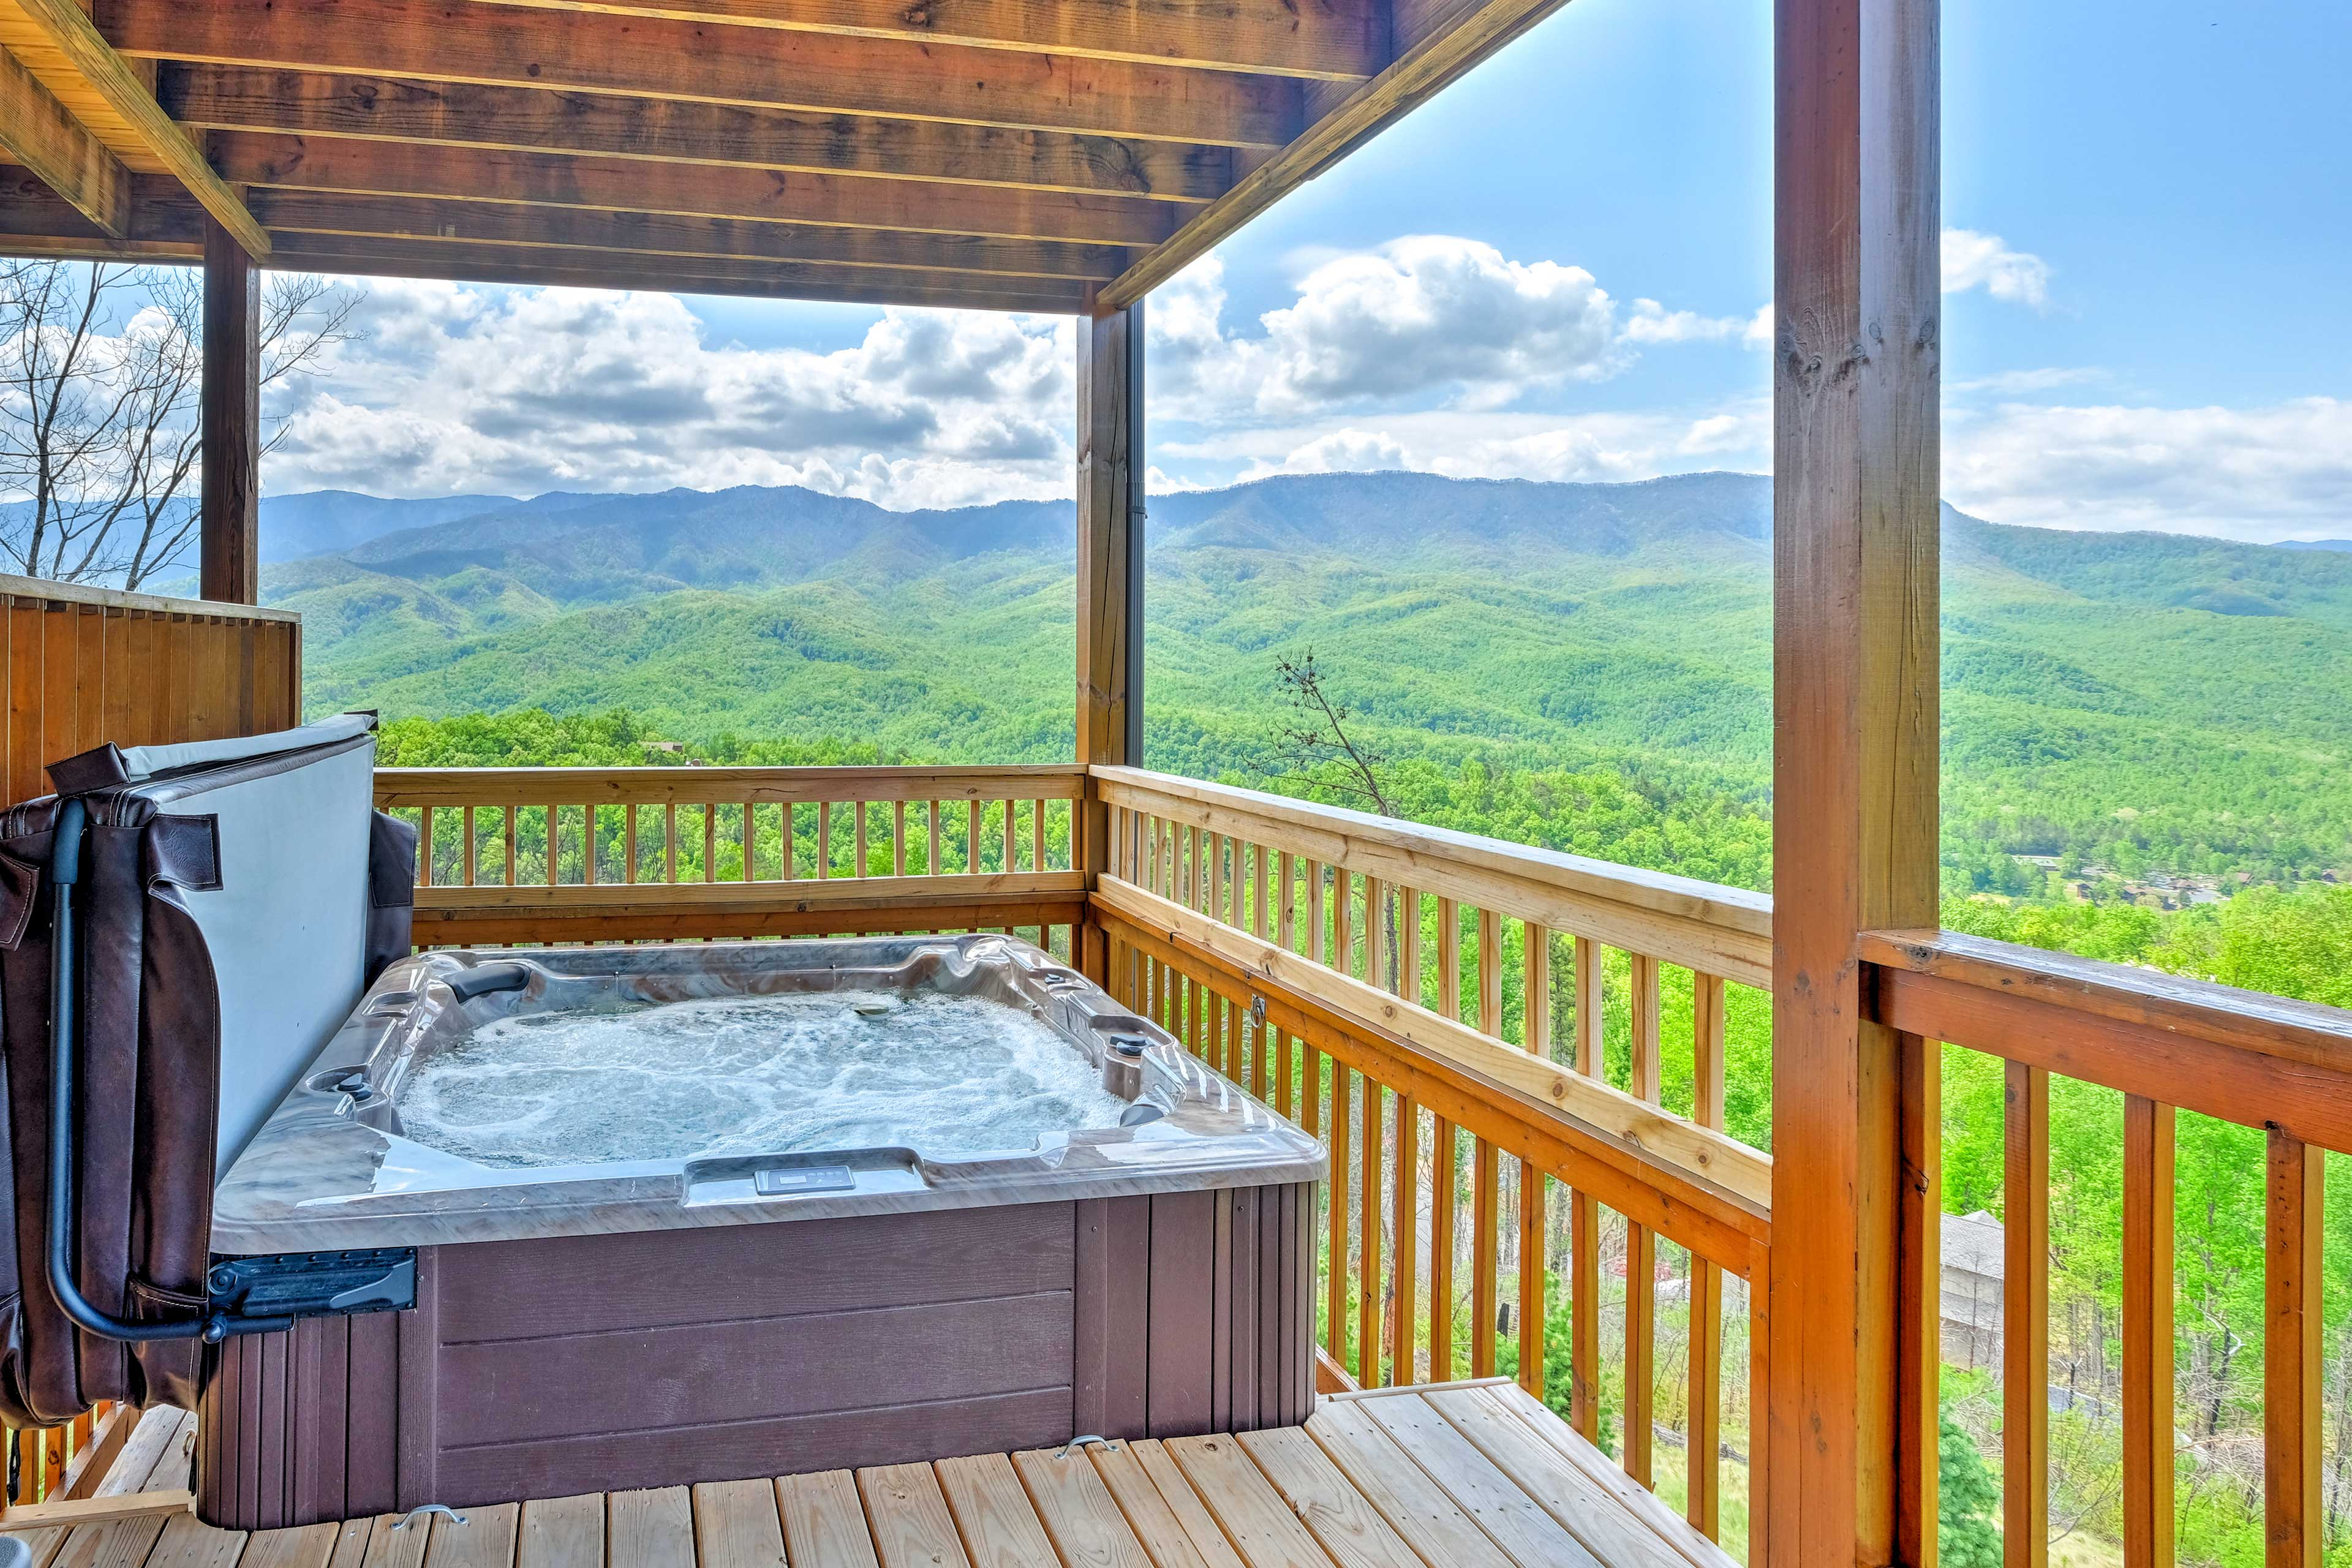 Bring your swimsuit and be sure to take a dip in the hot tub!